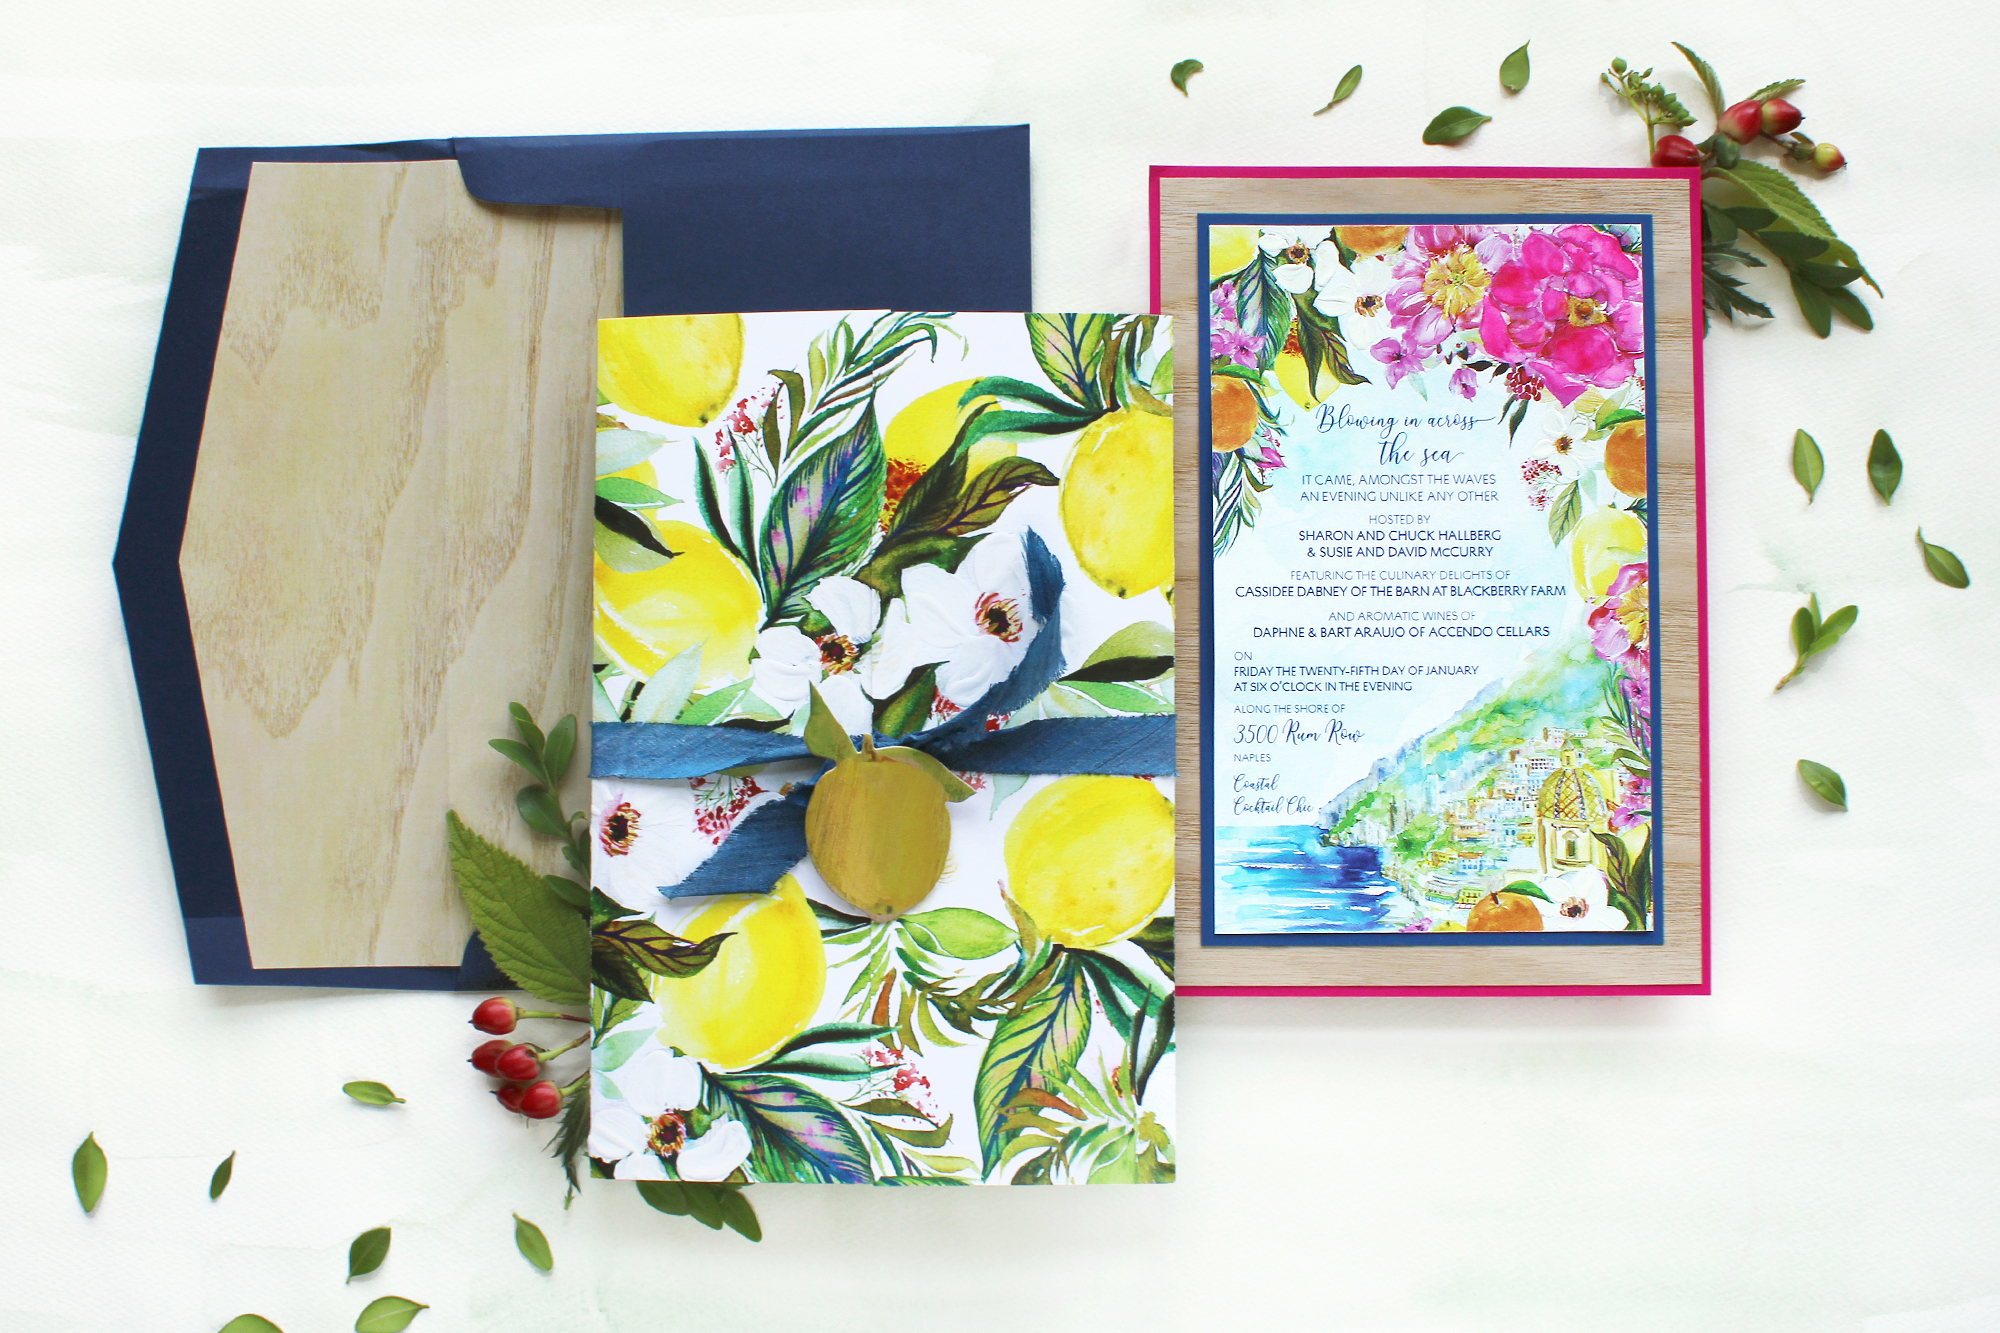 Bright Floral and Lemon Italian Inspired Corporate Event Stationery